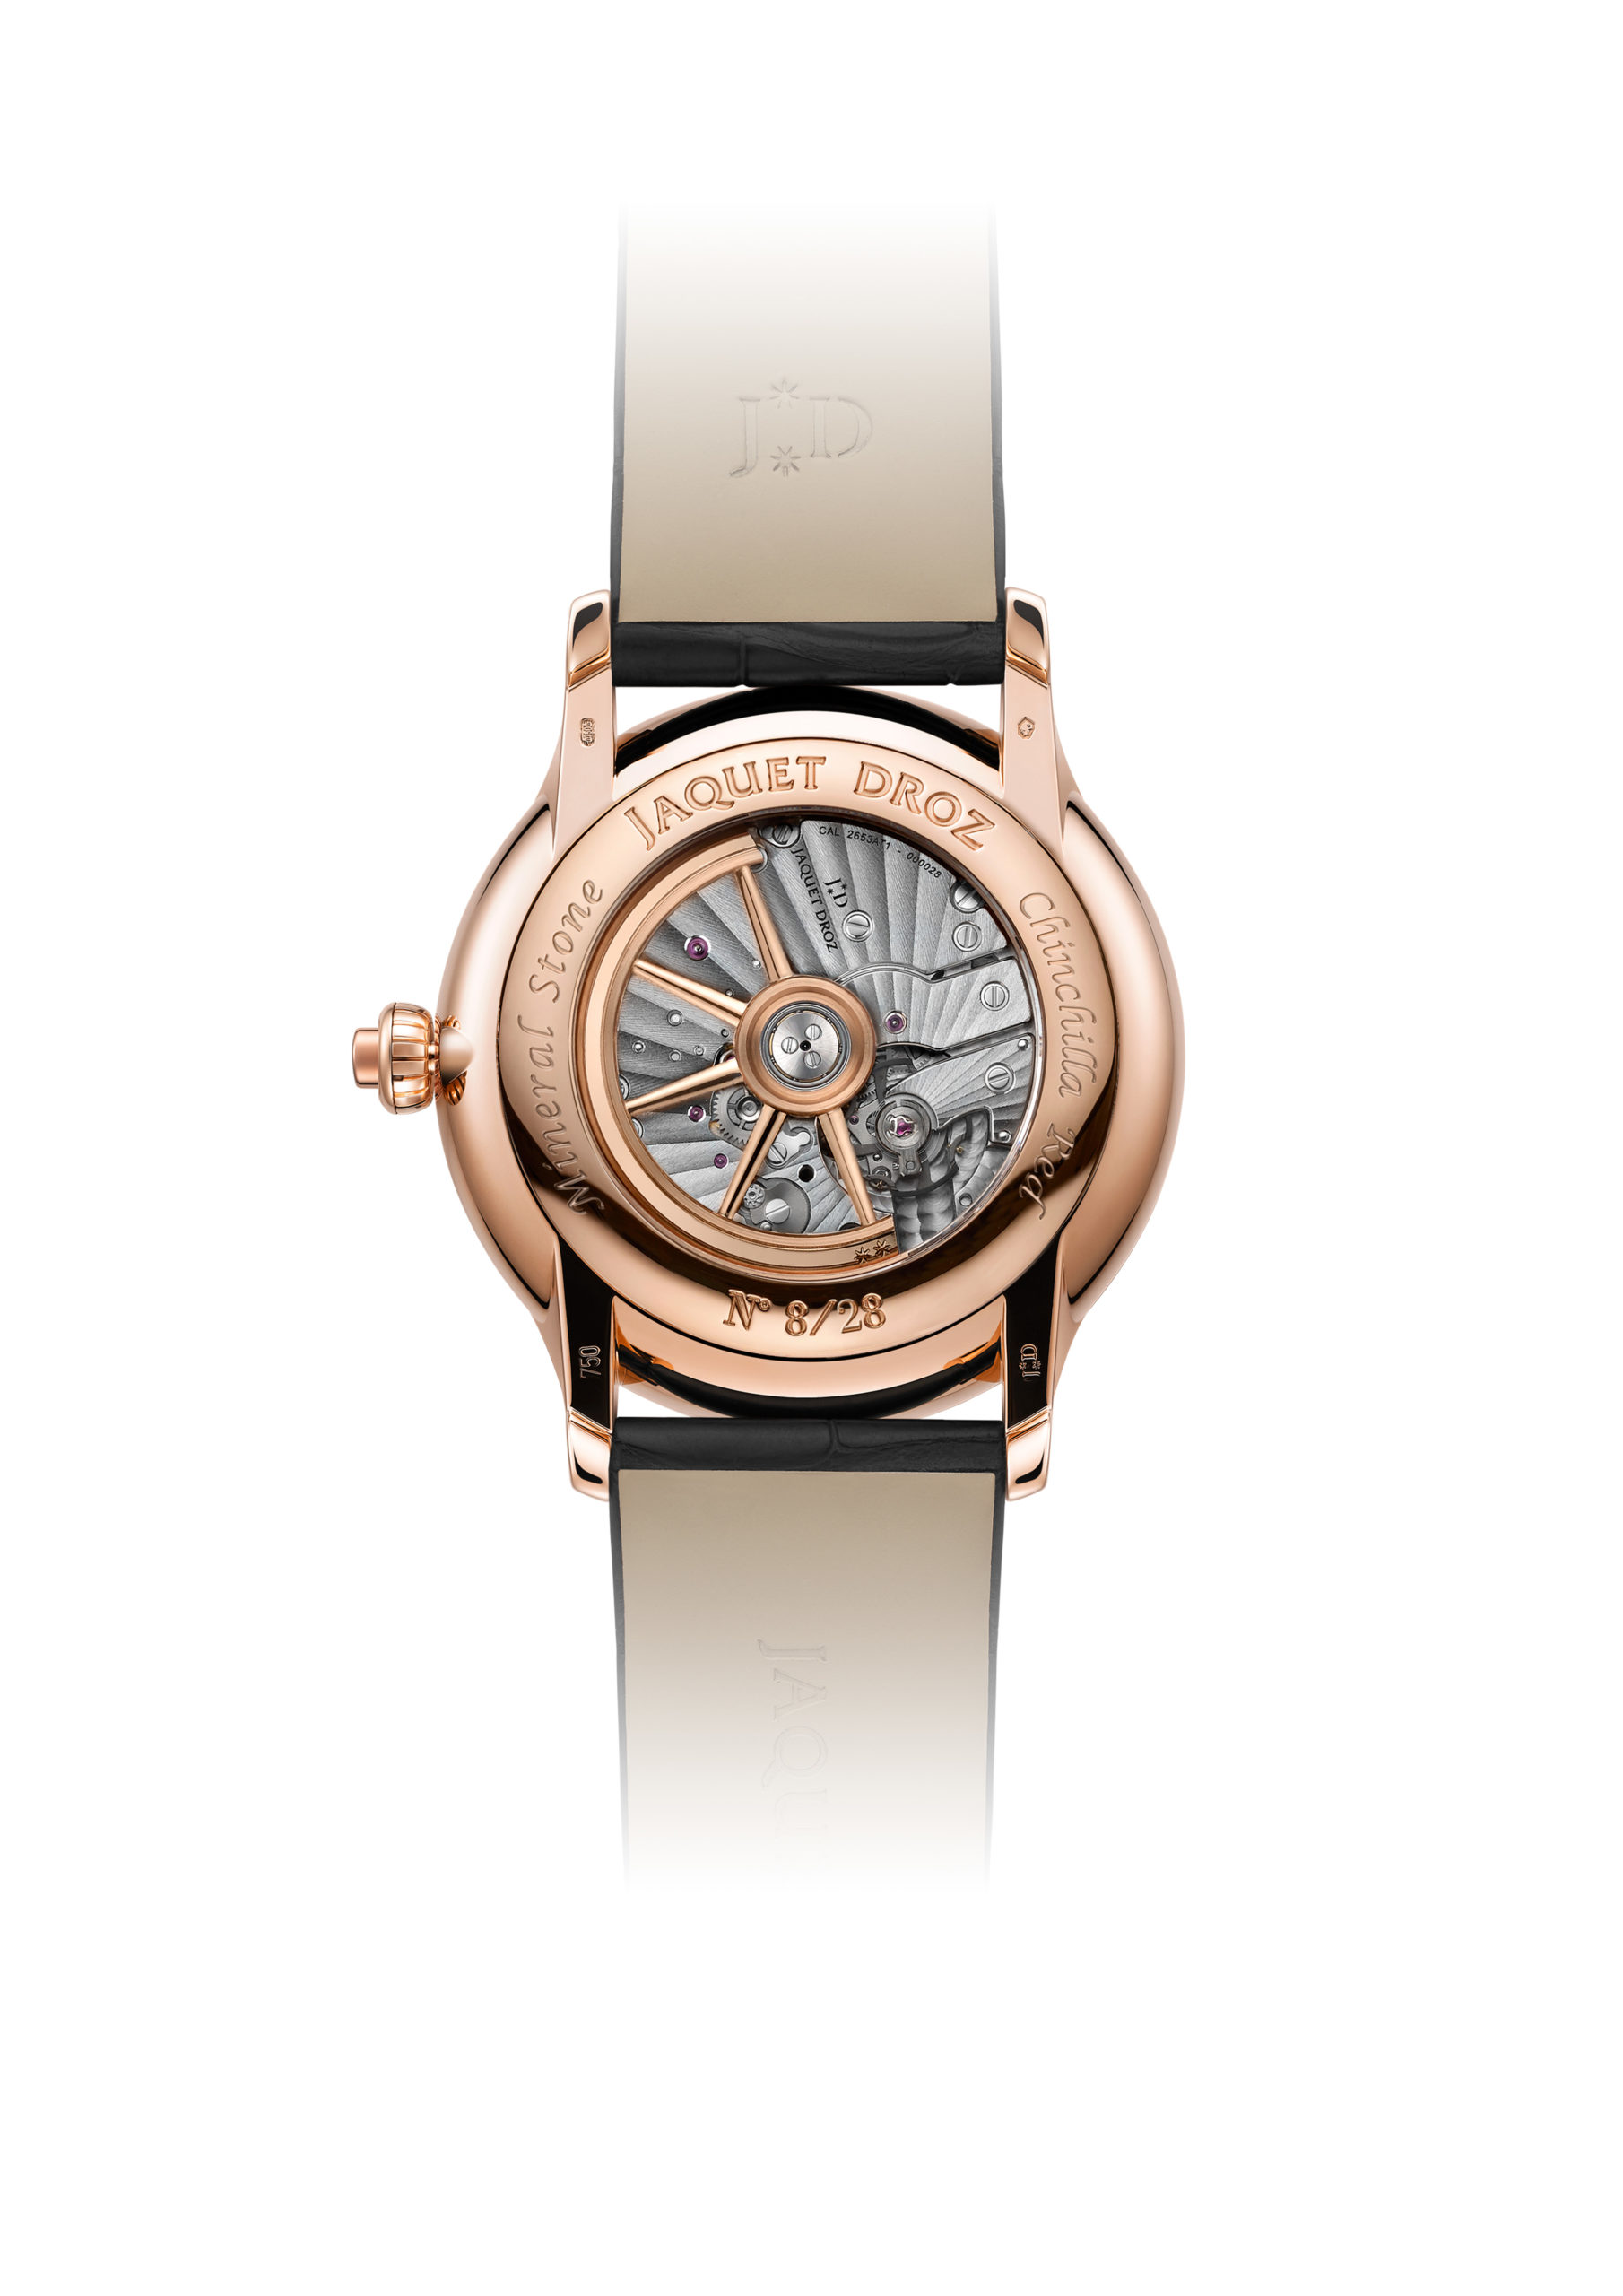 Loving Butterfly Automaton by Jaquet Droz